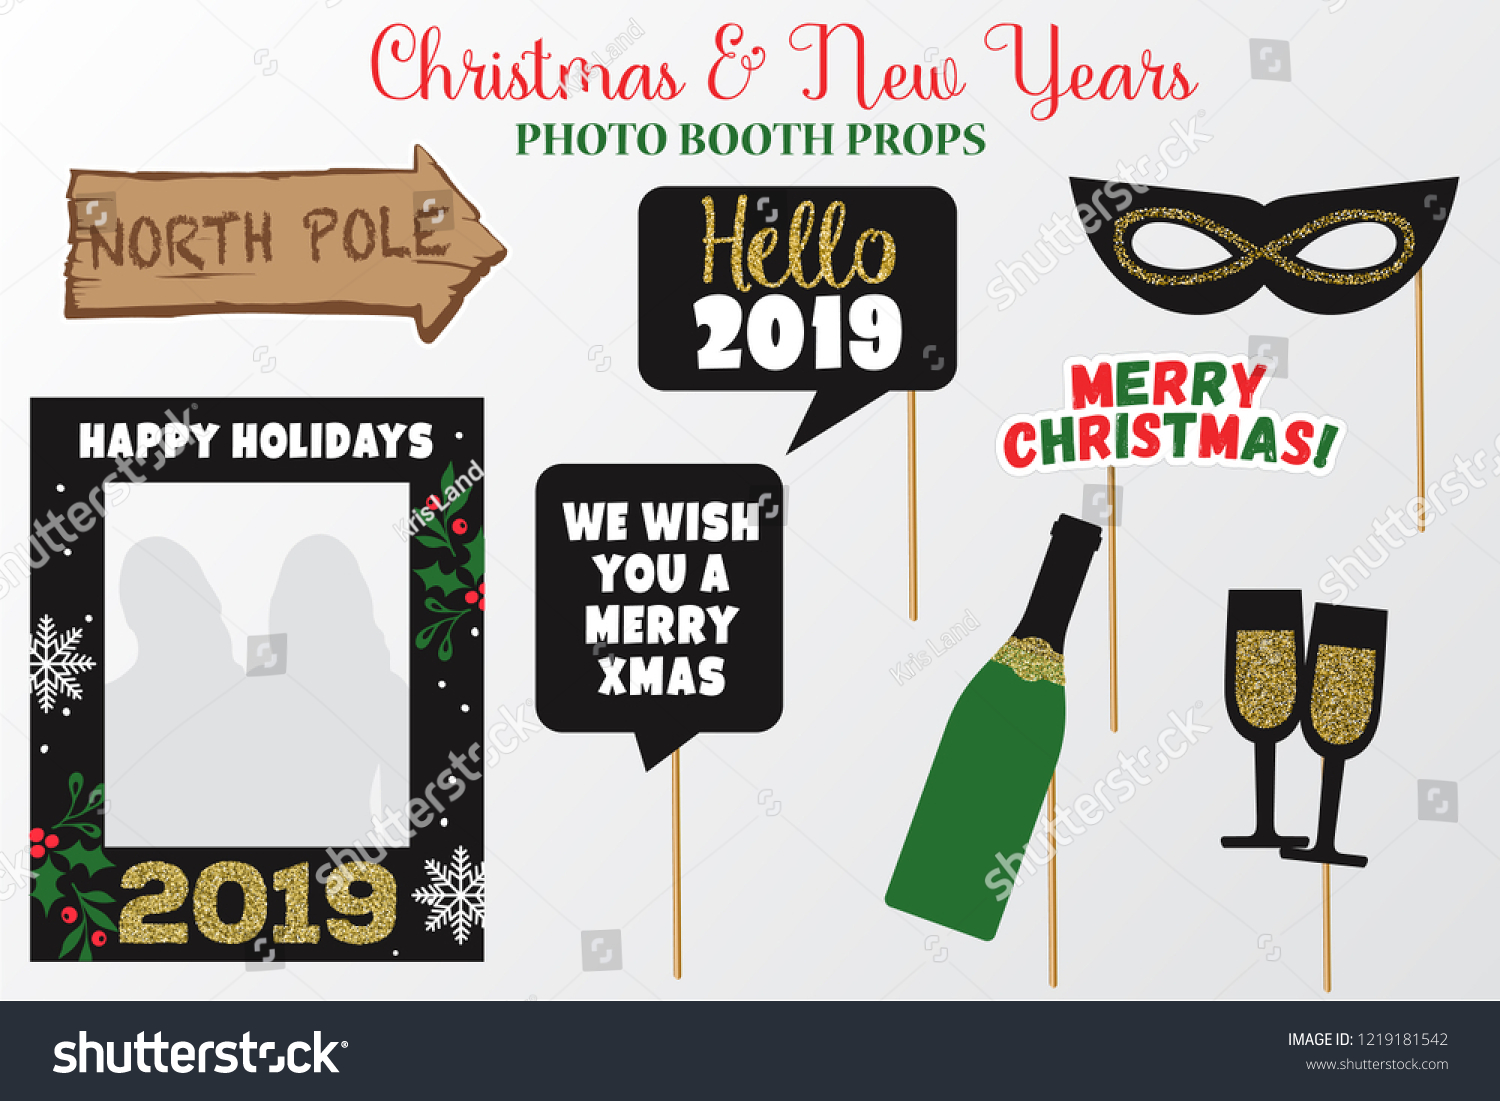 gold glitter christmas and new year photo booth props party printable speech bubble we